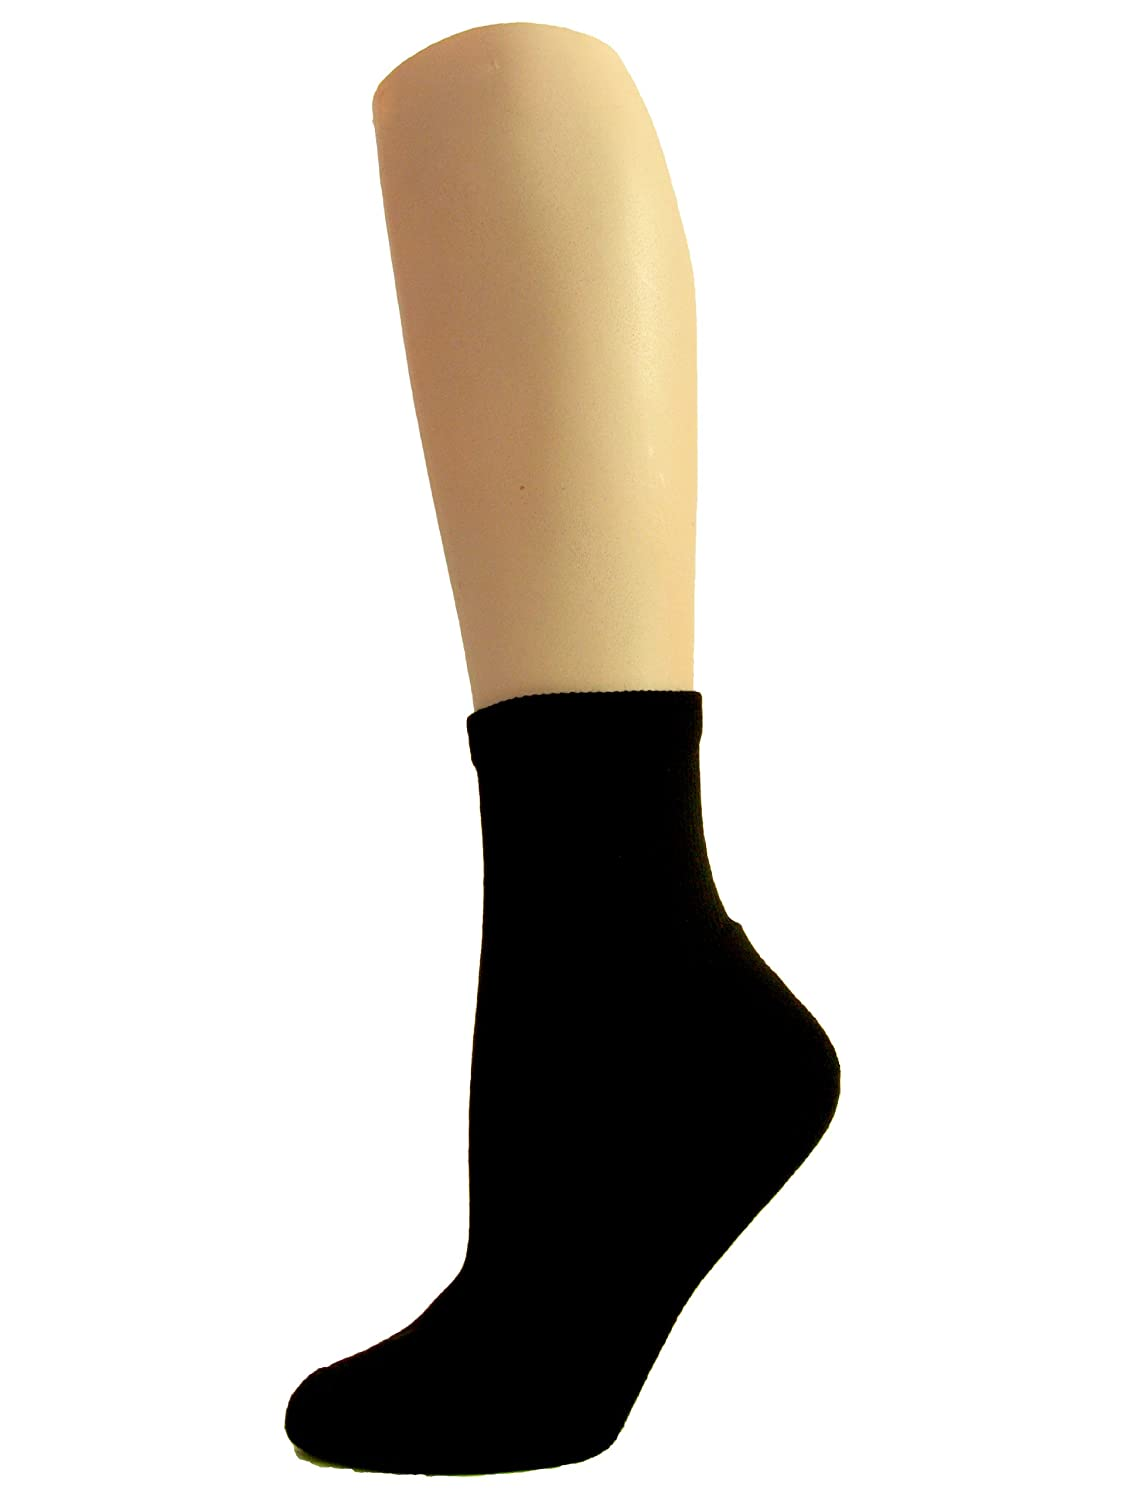 COUVER Youth Kids Sports Quarter Athletic Socks Size Youth Large ORANGE BBS990-LGTORG-S-1